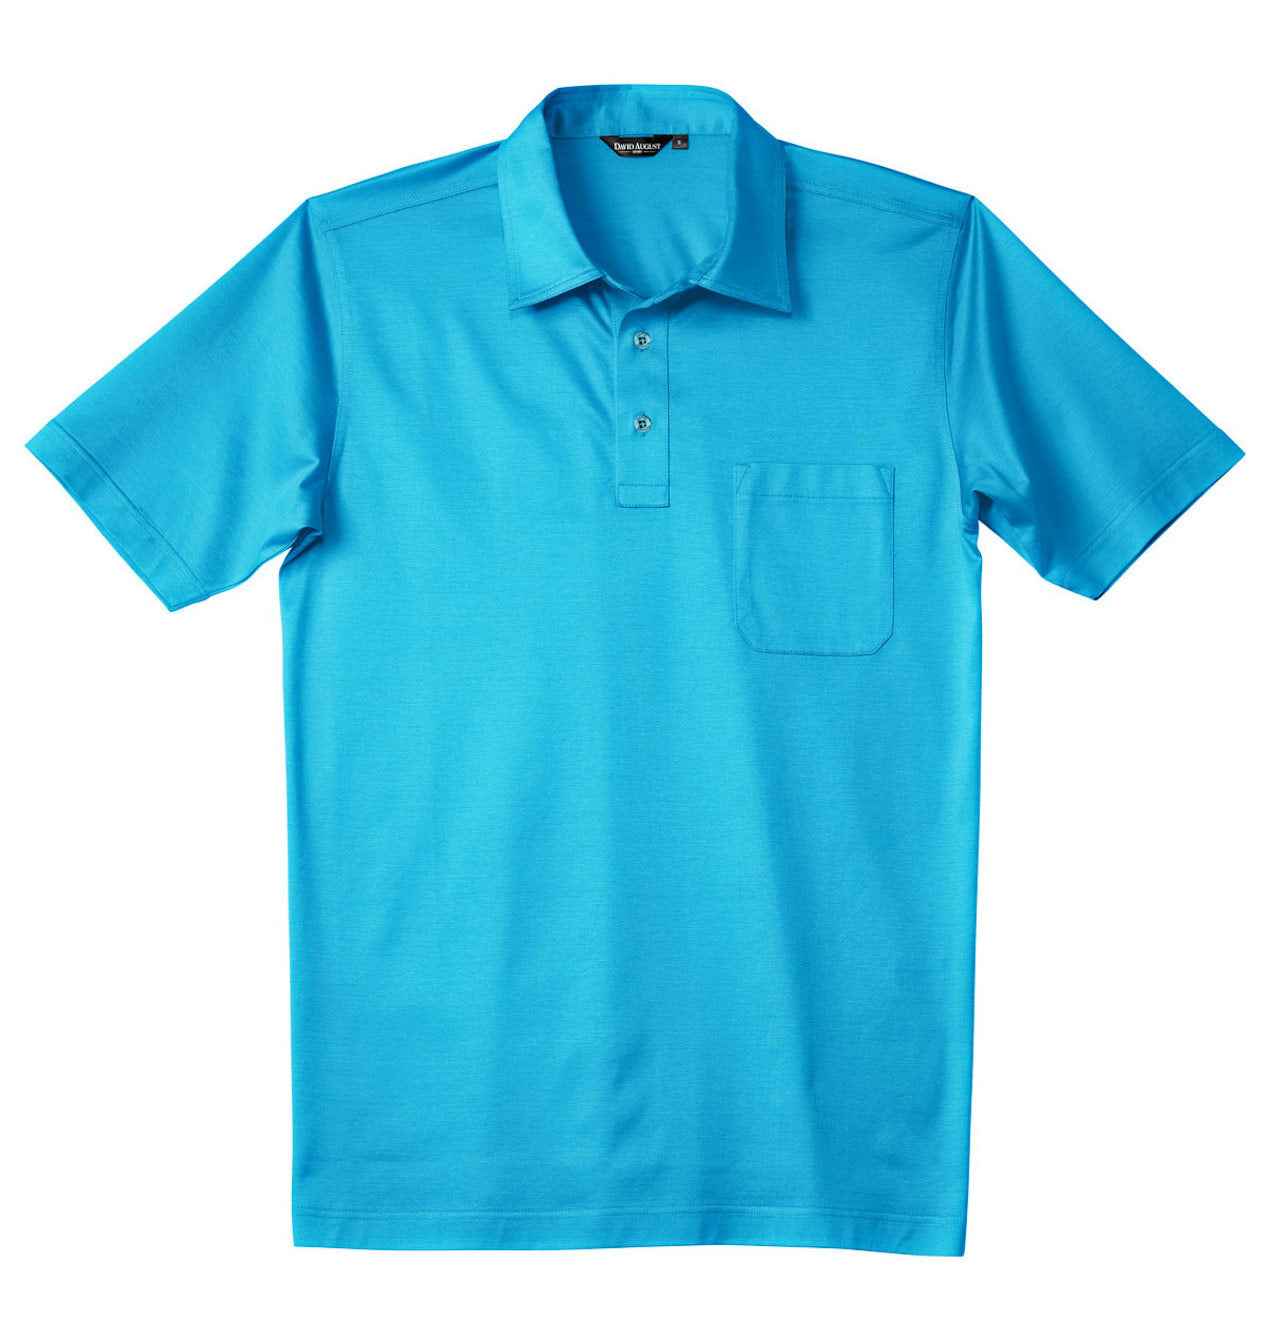 Luxury Mercerized Cotton Polo in Turquoise